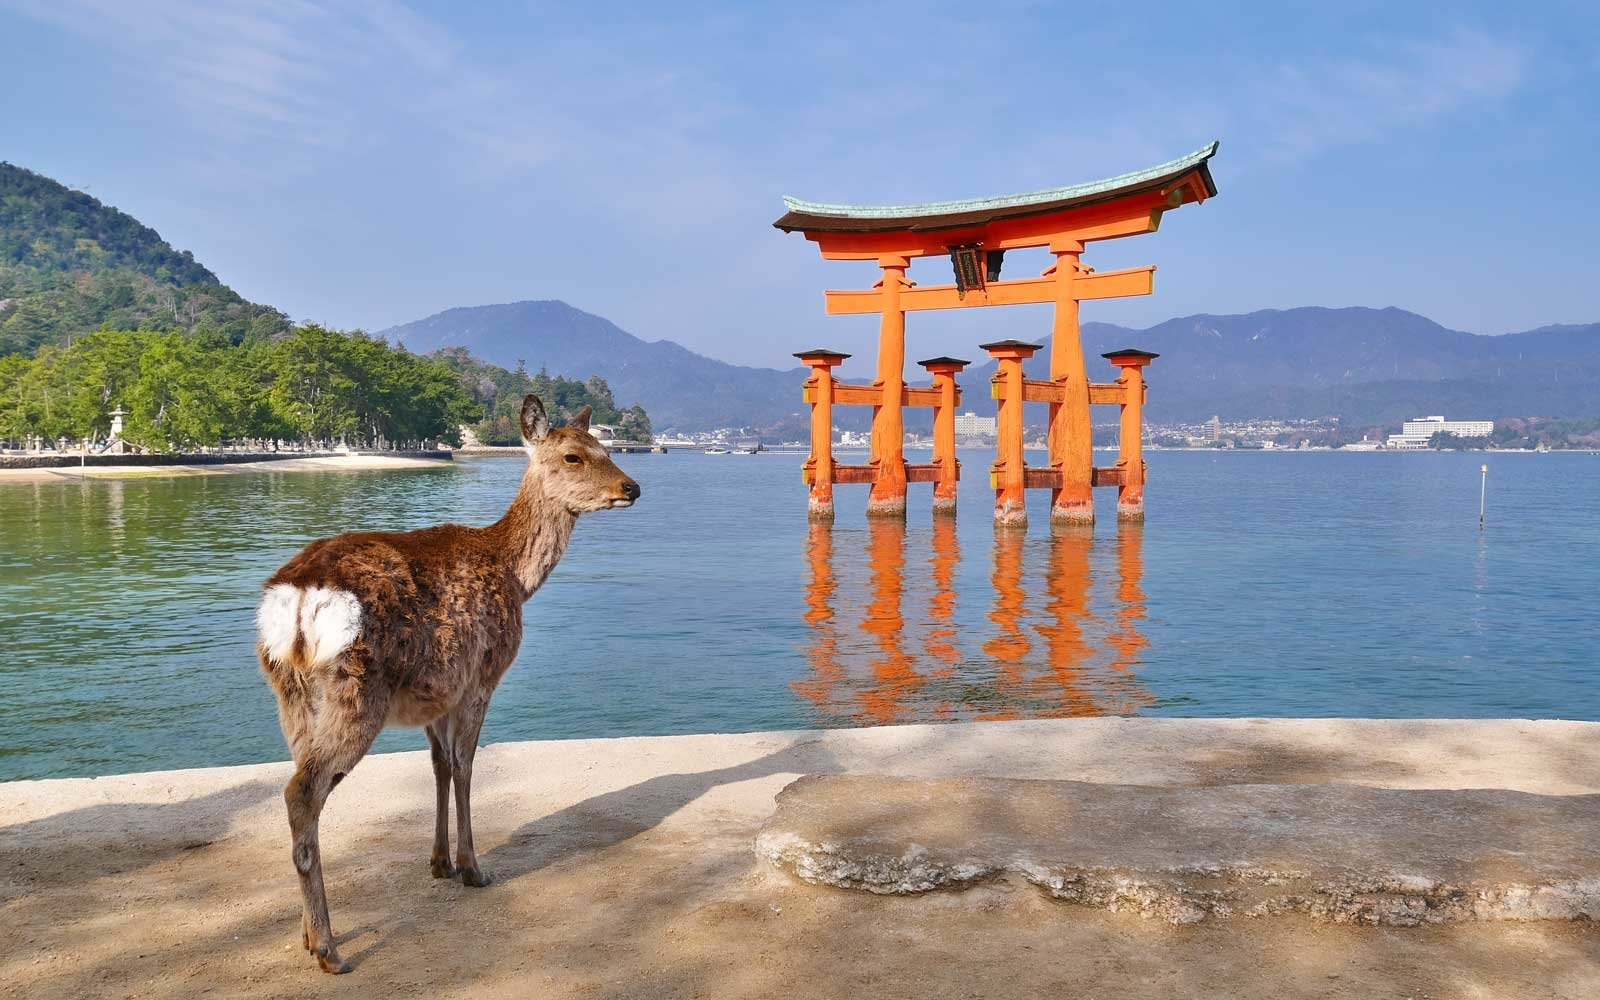 A wild deer is looking at the famous floating Torii Gate in Miyajima Island